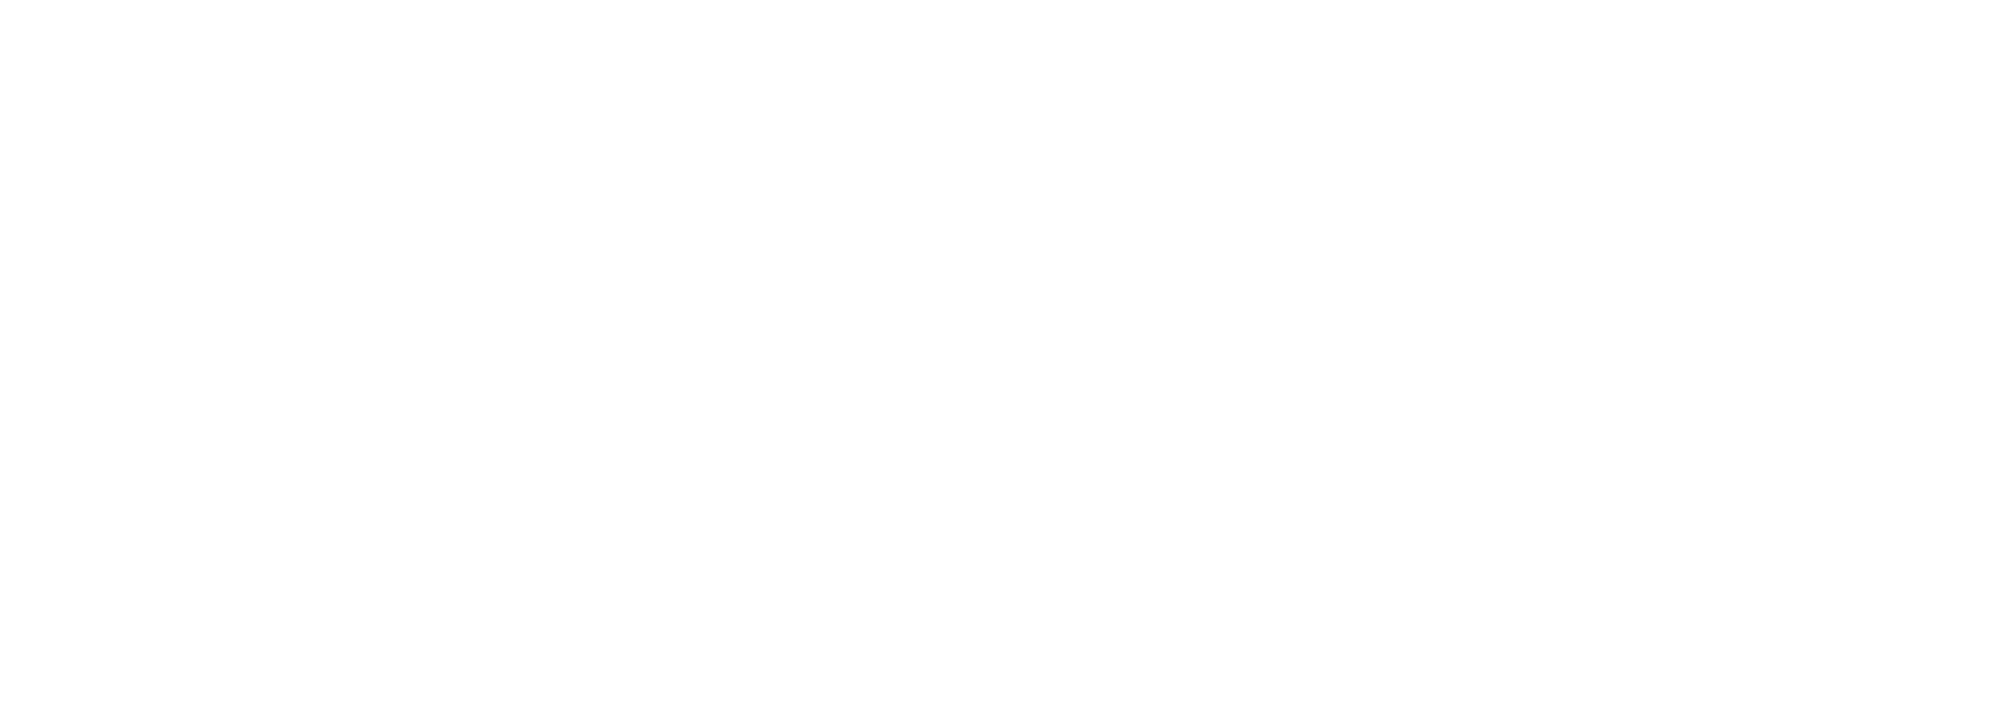 Family Holiday Helpers